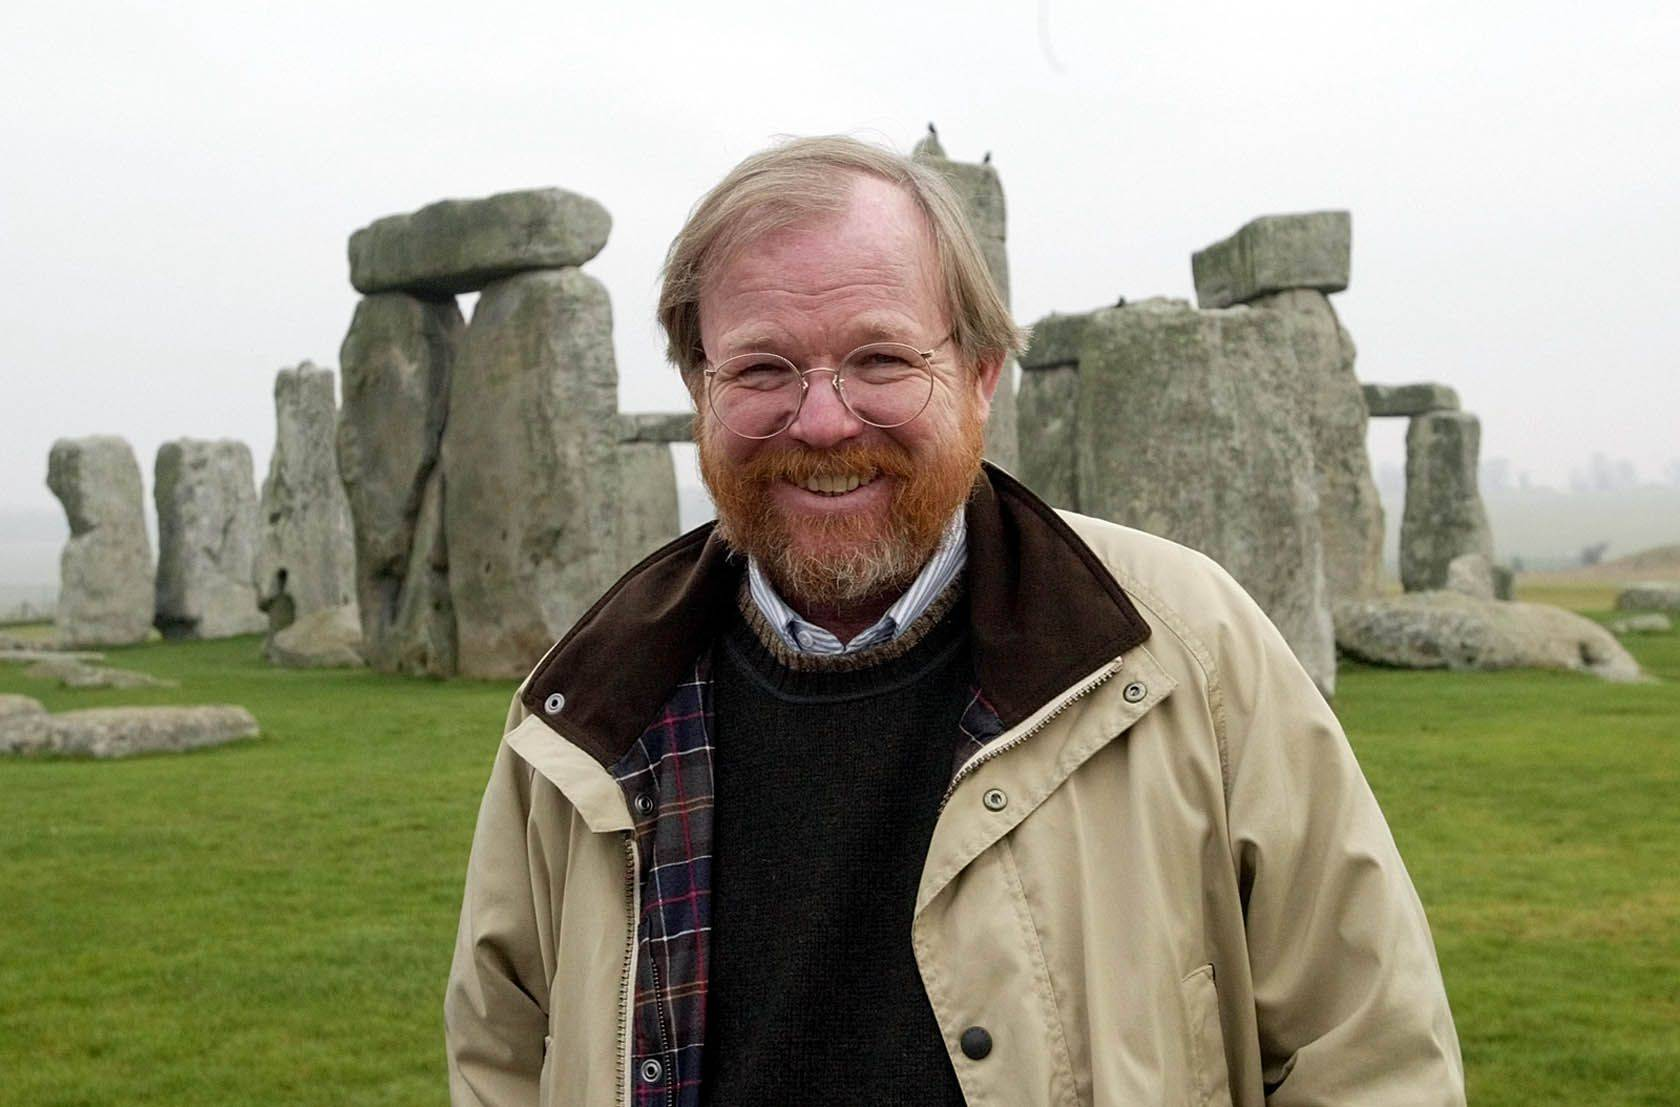 Anderson's Bookshops sponsors an appearance by American author Bill Bryson at North Central College's Meiley-Swallow Hall in Naperville on Wednesday, Oct. 26.